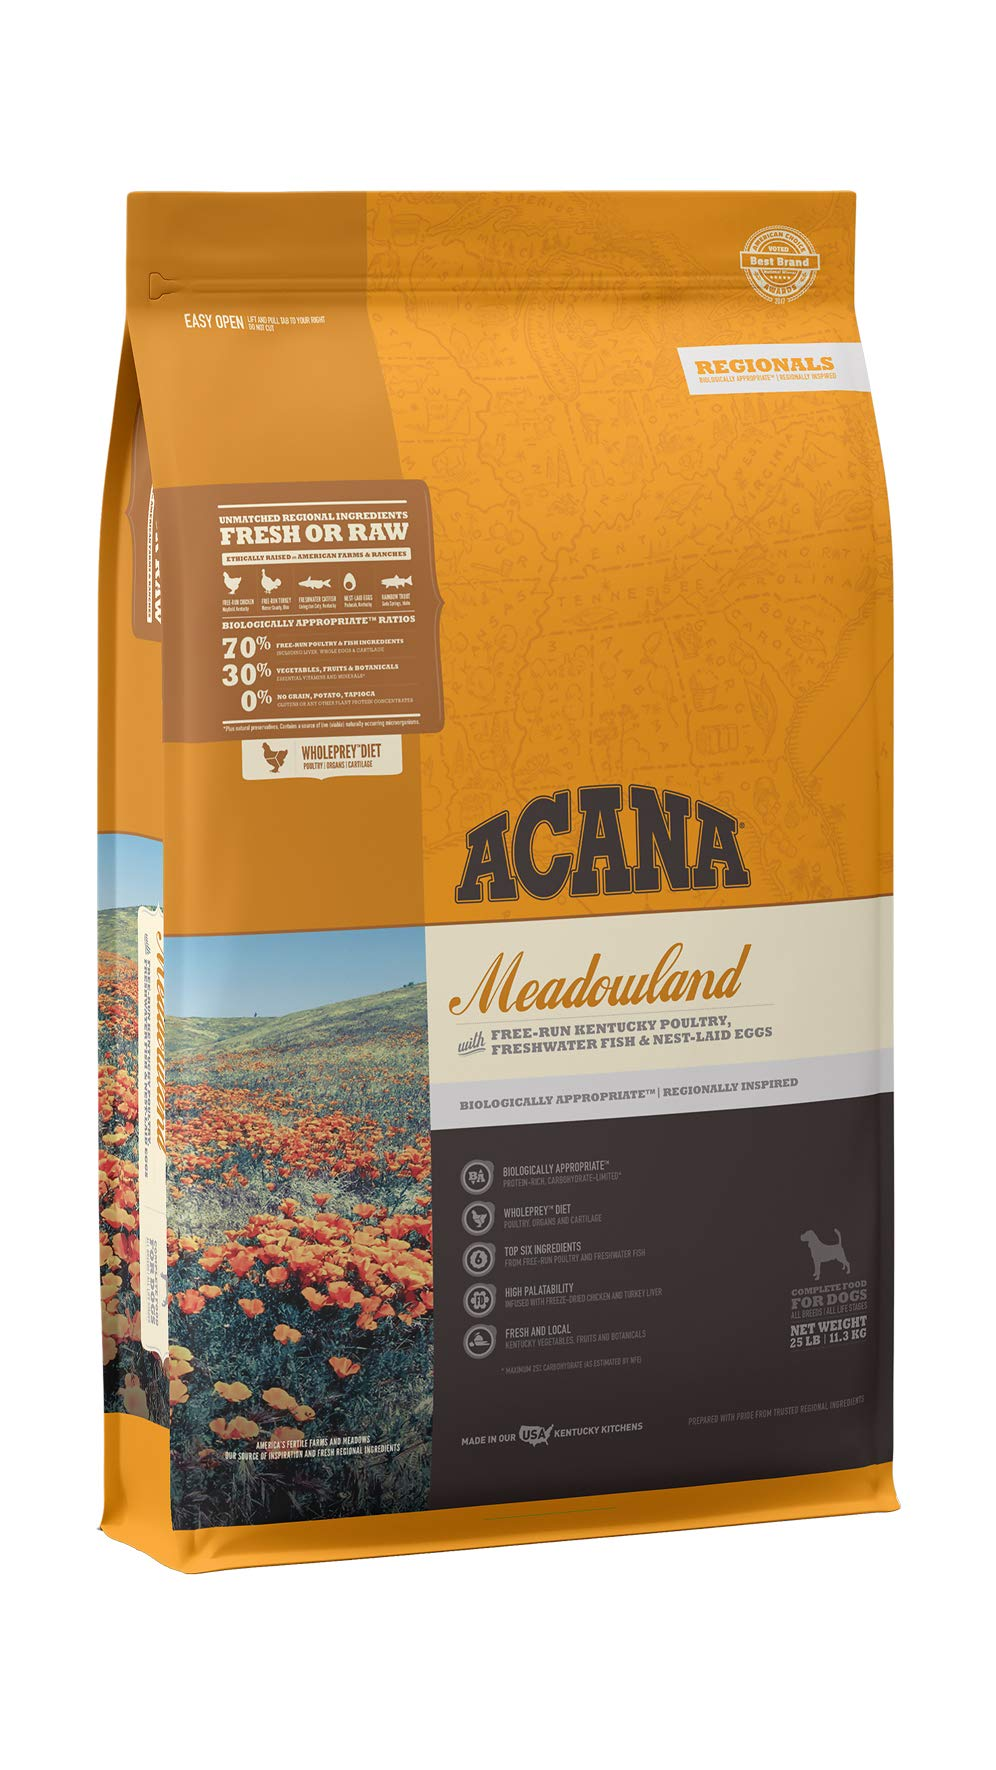 ACANA Regionals Dry Dog Food, Meadowland, Biologically Appropriate & Grain Free by ACANA